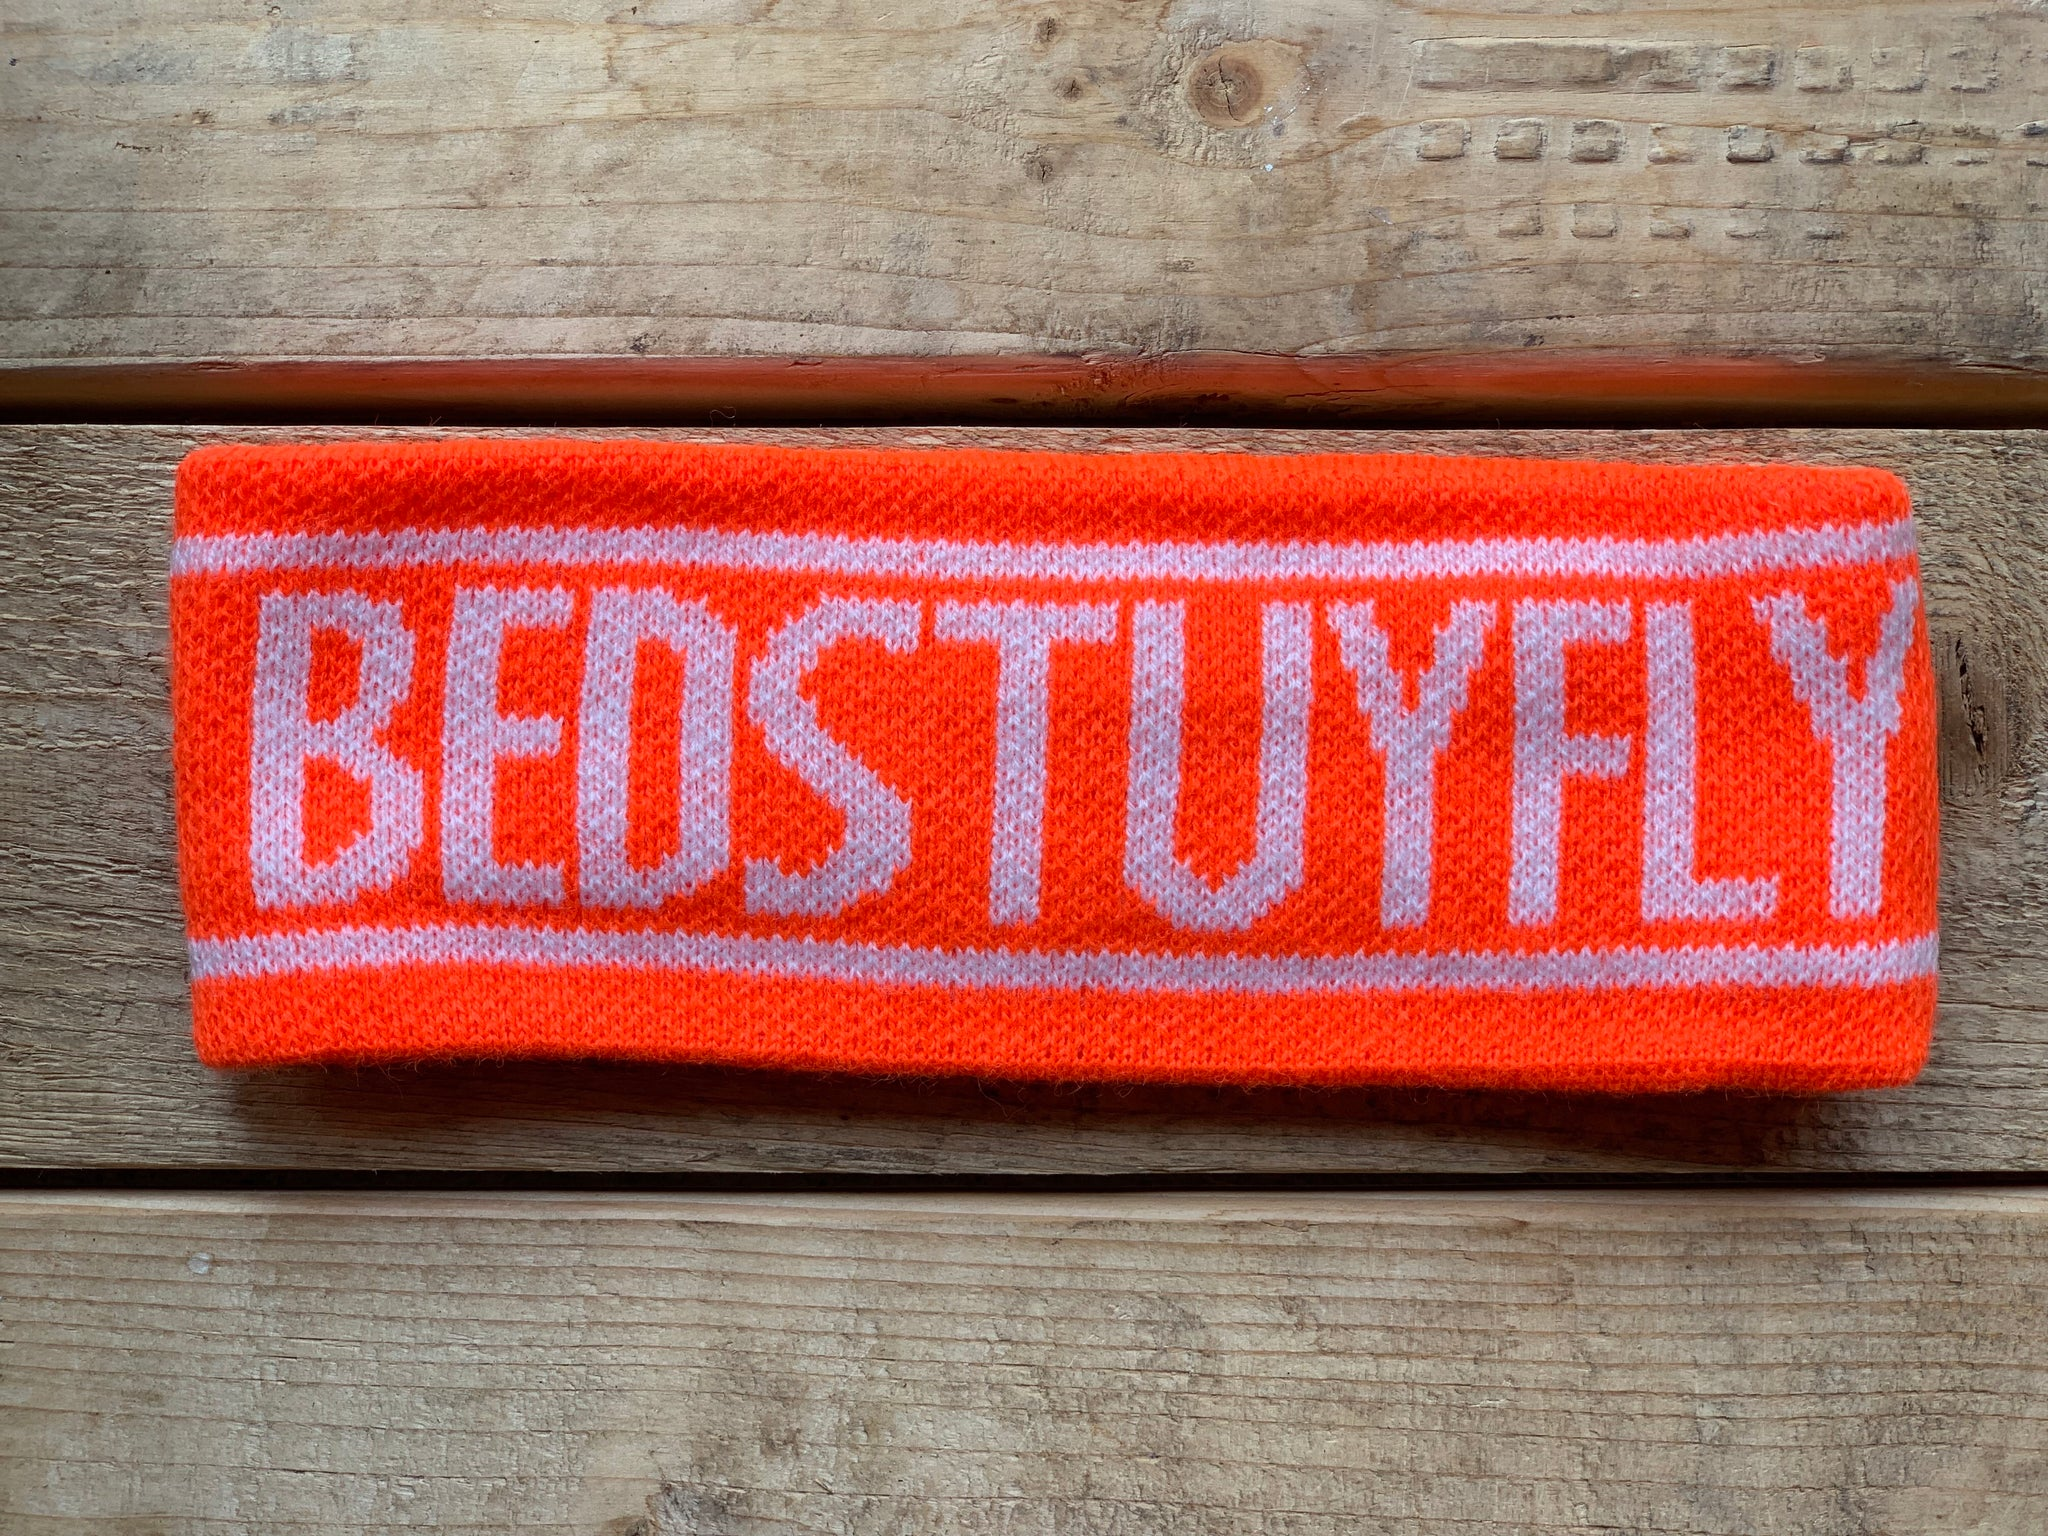 Bedstuyfly Headband (Orange)